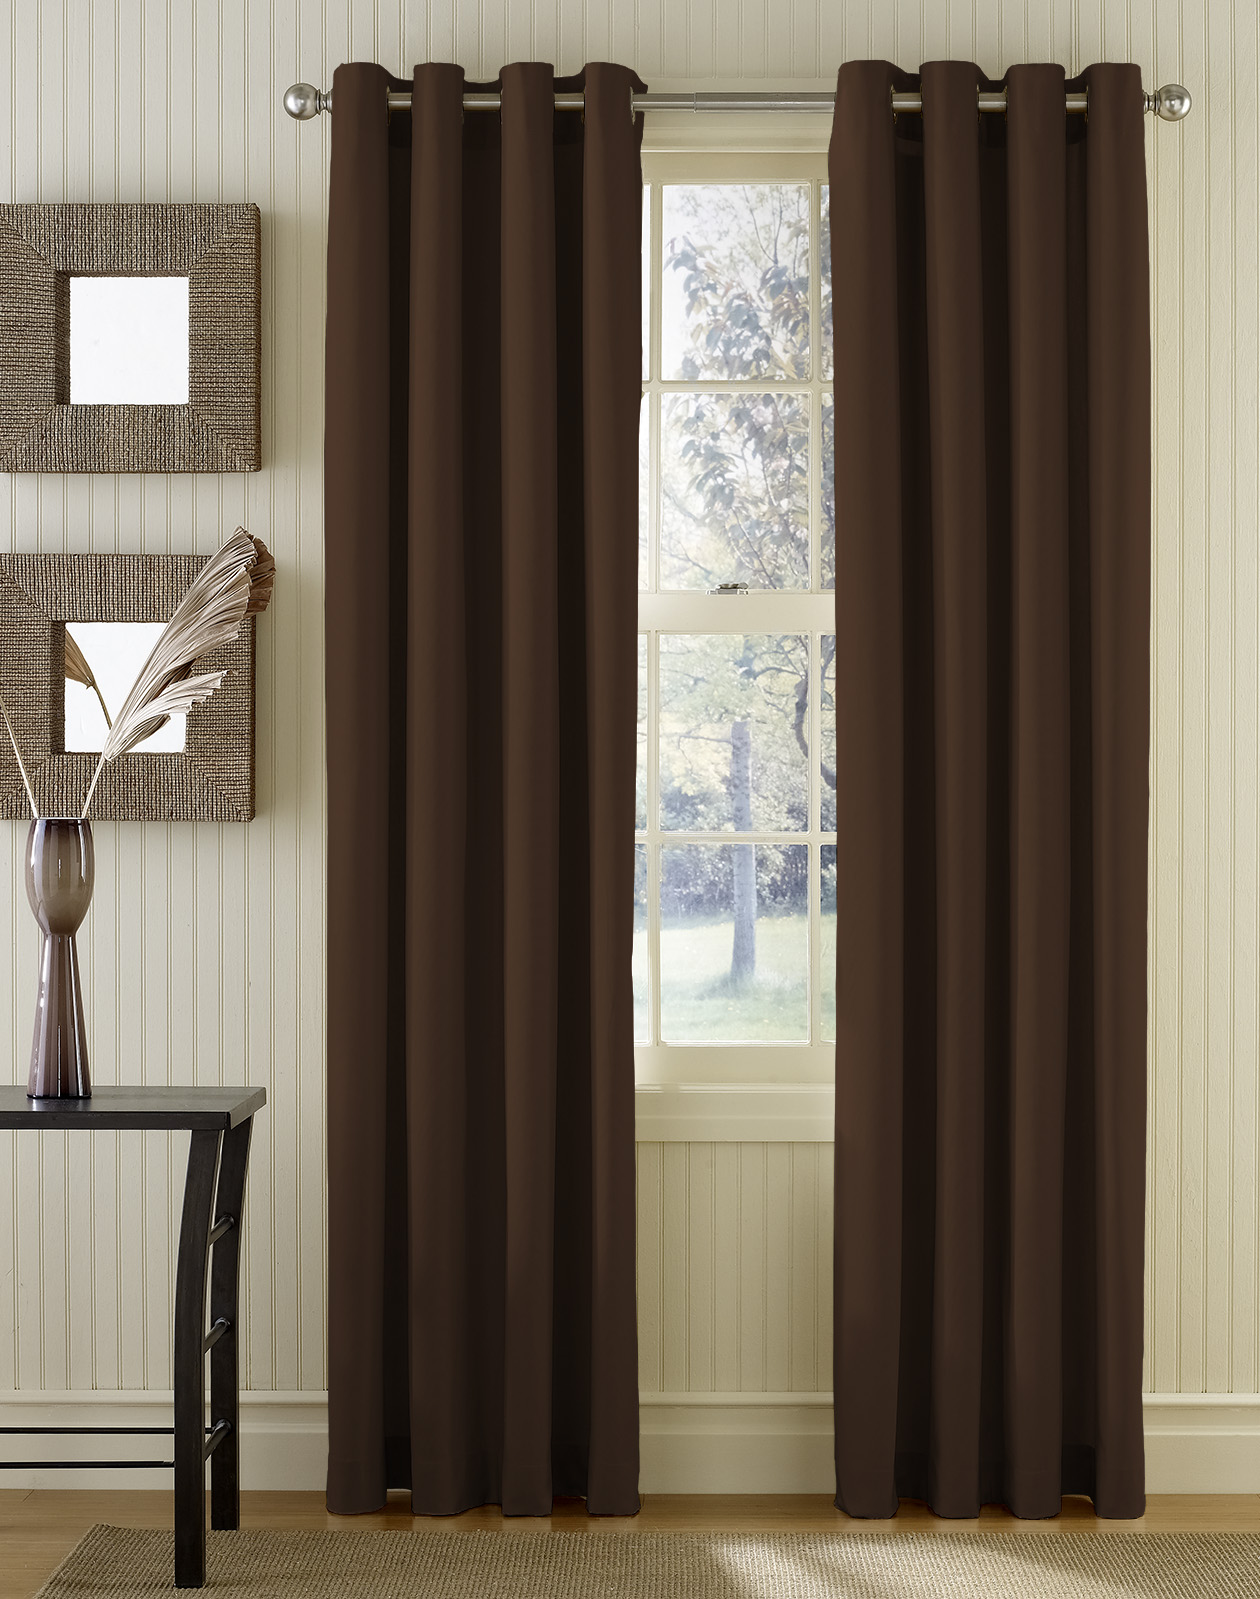 Curtain interior design what is minimalist curtain design - Sitting room curtain decoration ...